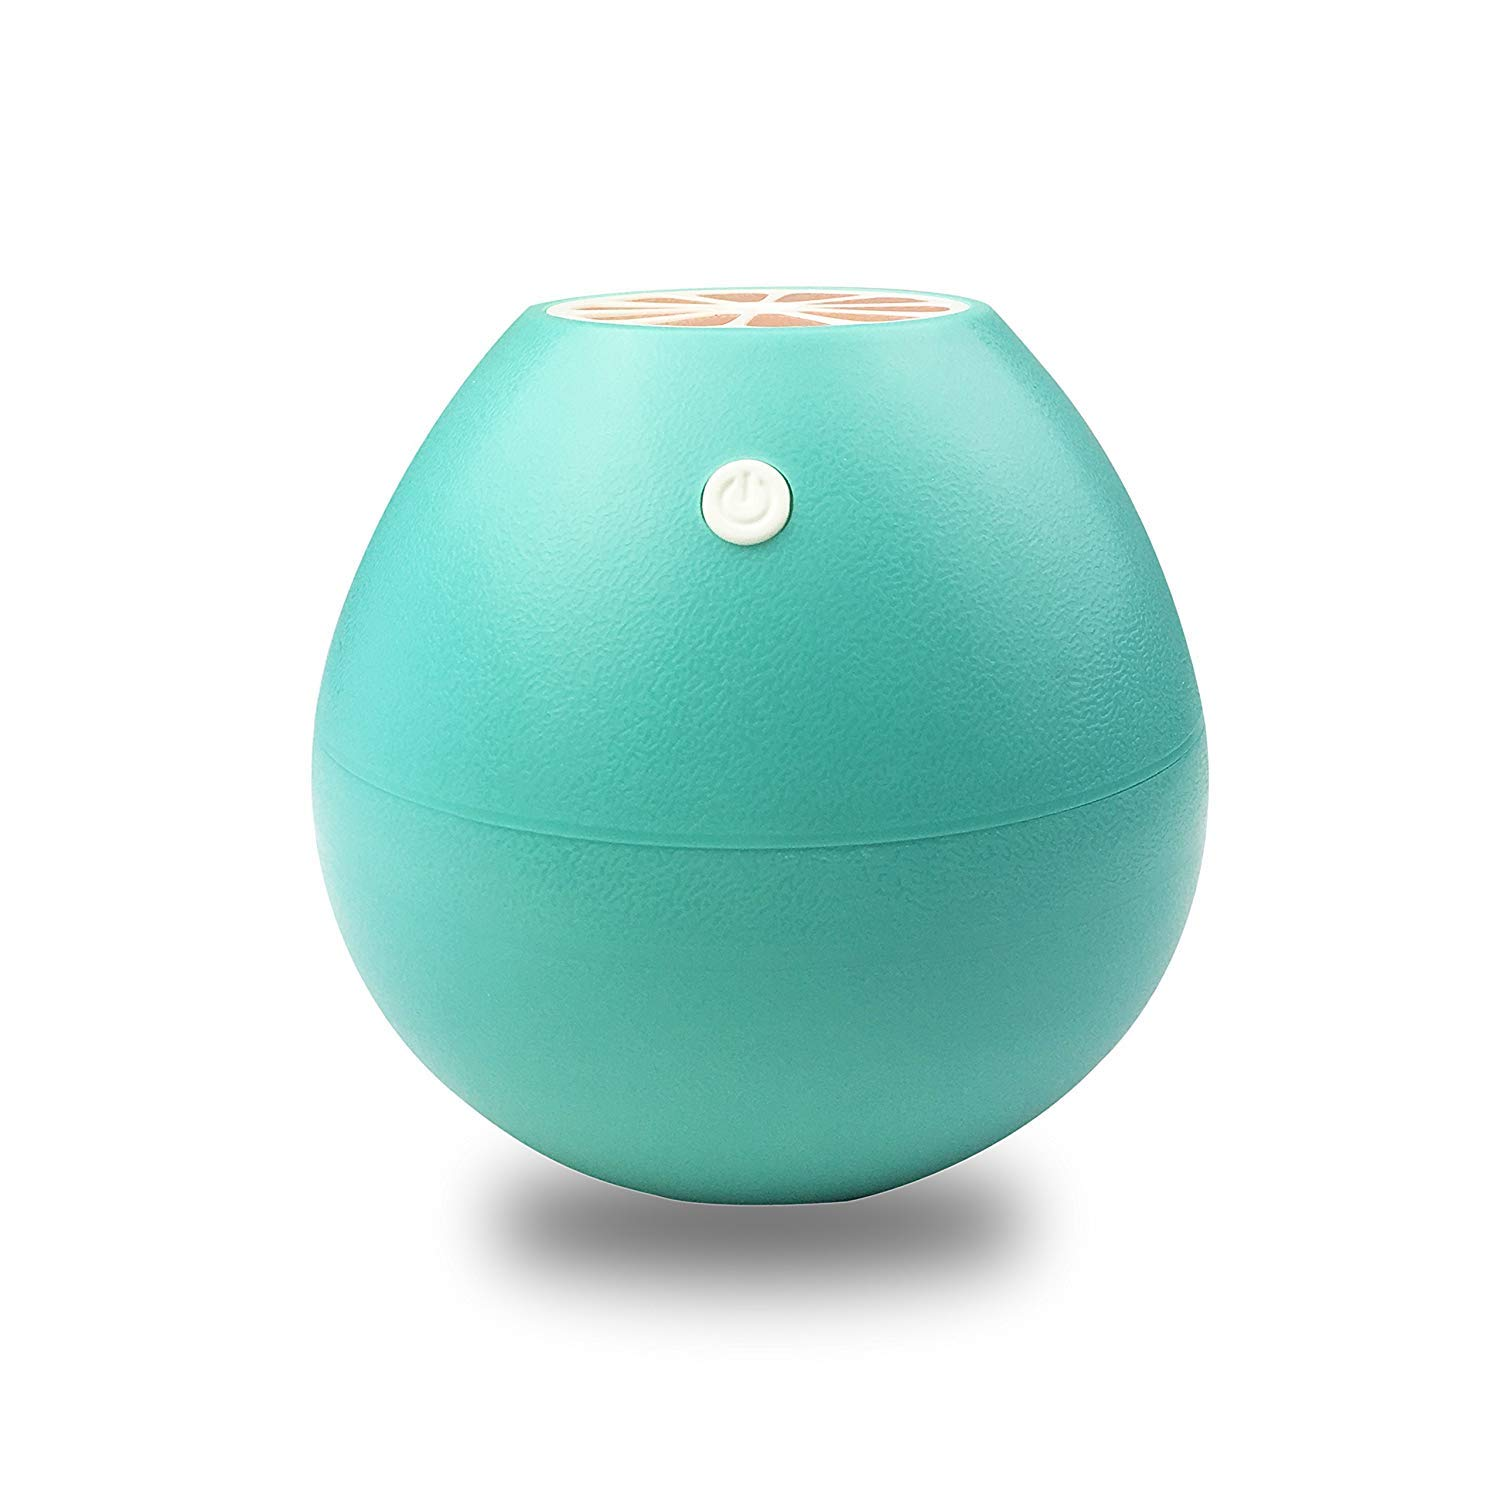 Duperym Mini Cool Mist Humidifier Desk Travel Portable for Car, Home, Office, with Whisper Quiet USB Operation Featuring Comforting Night Light and Automatic Shut-Off